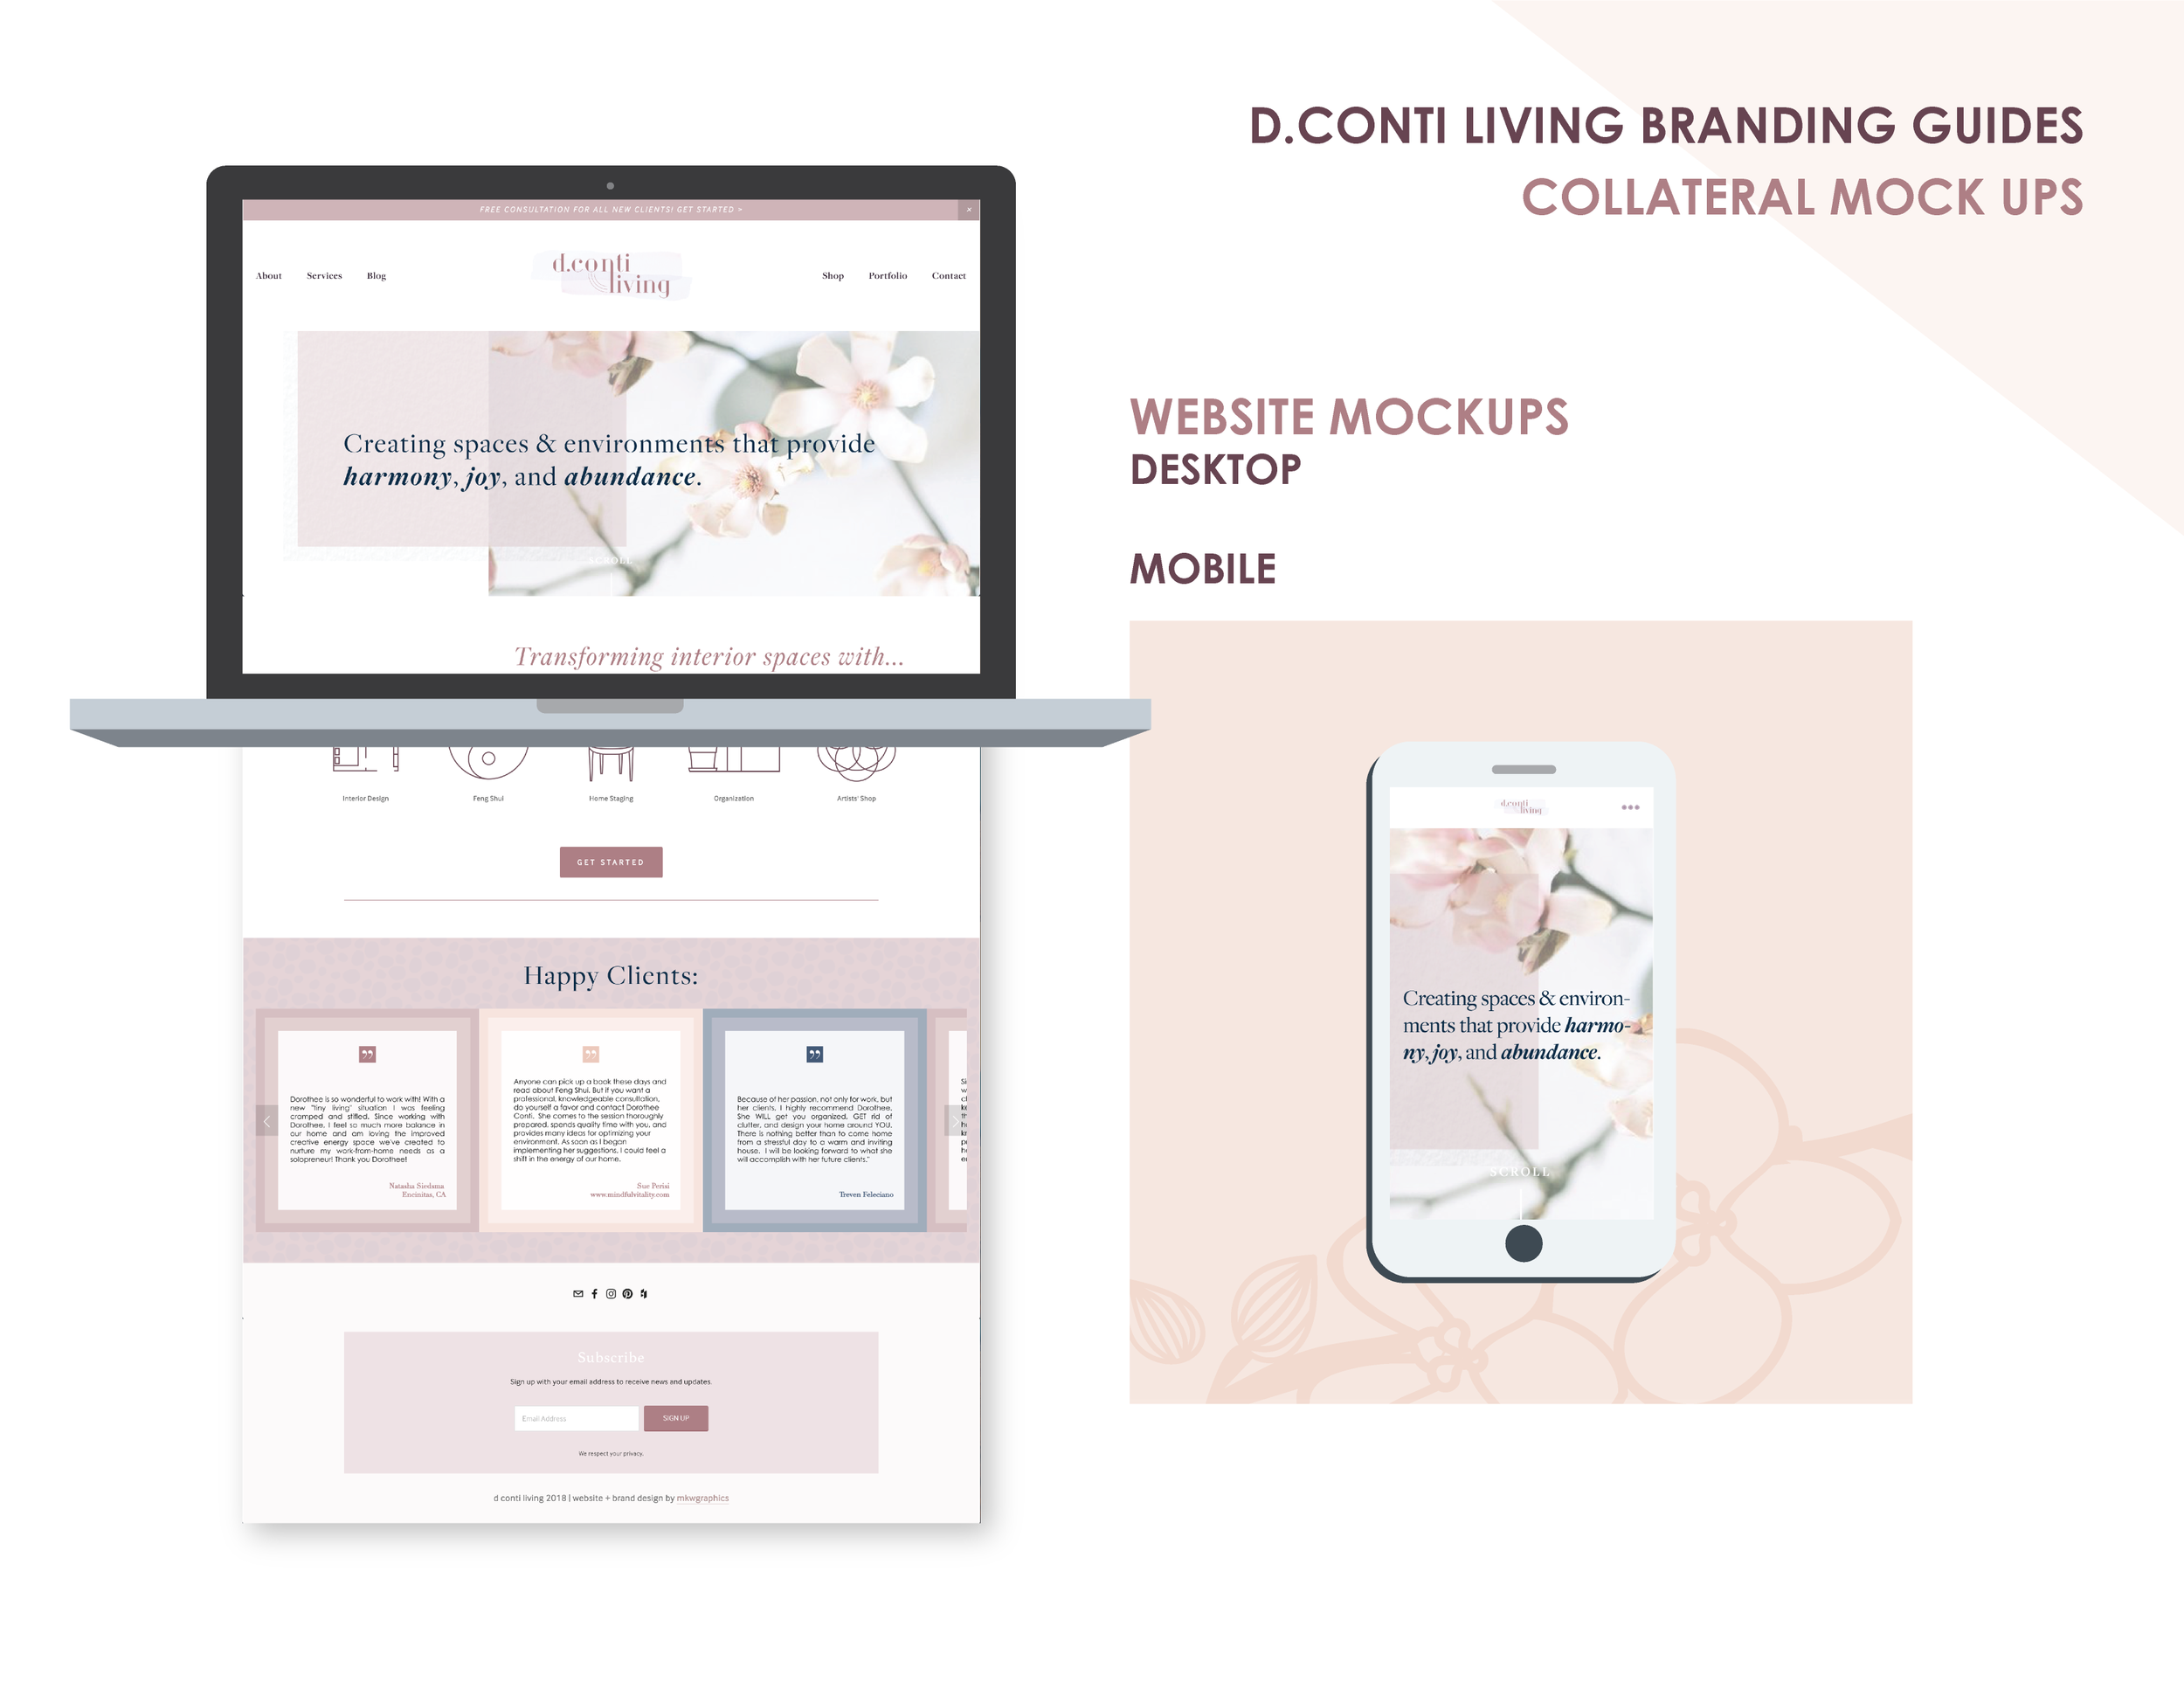 D Conti Living_Brand Guides-09.png